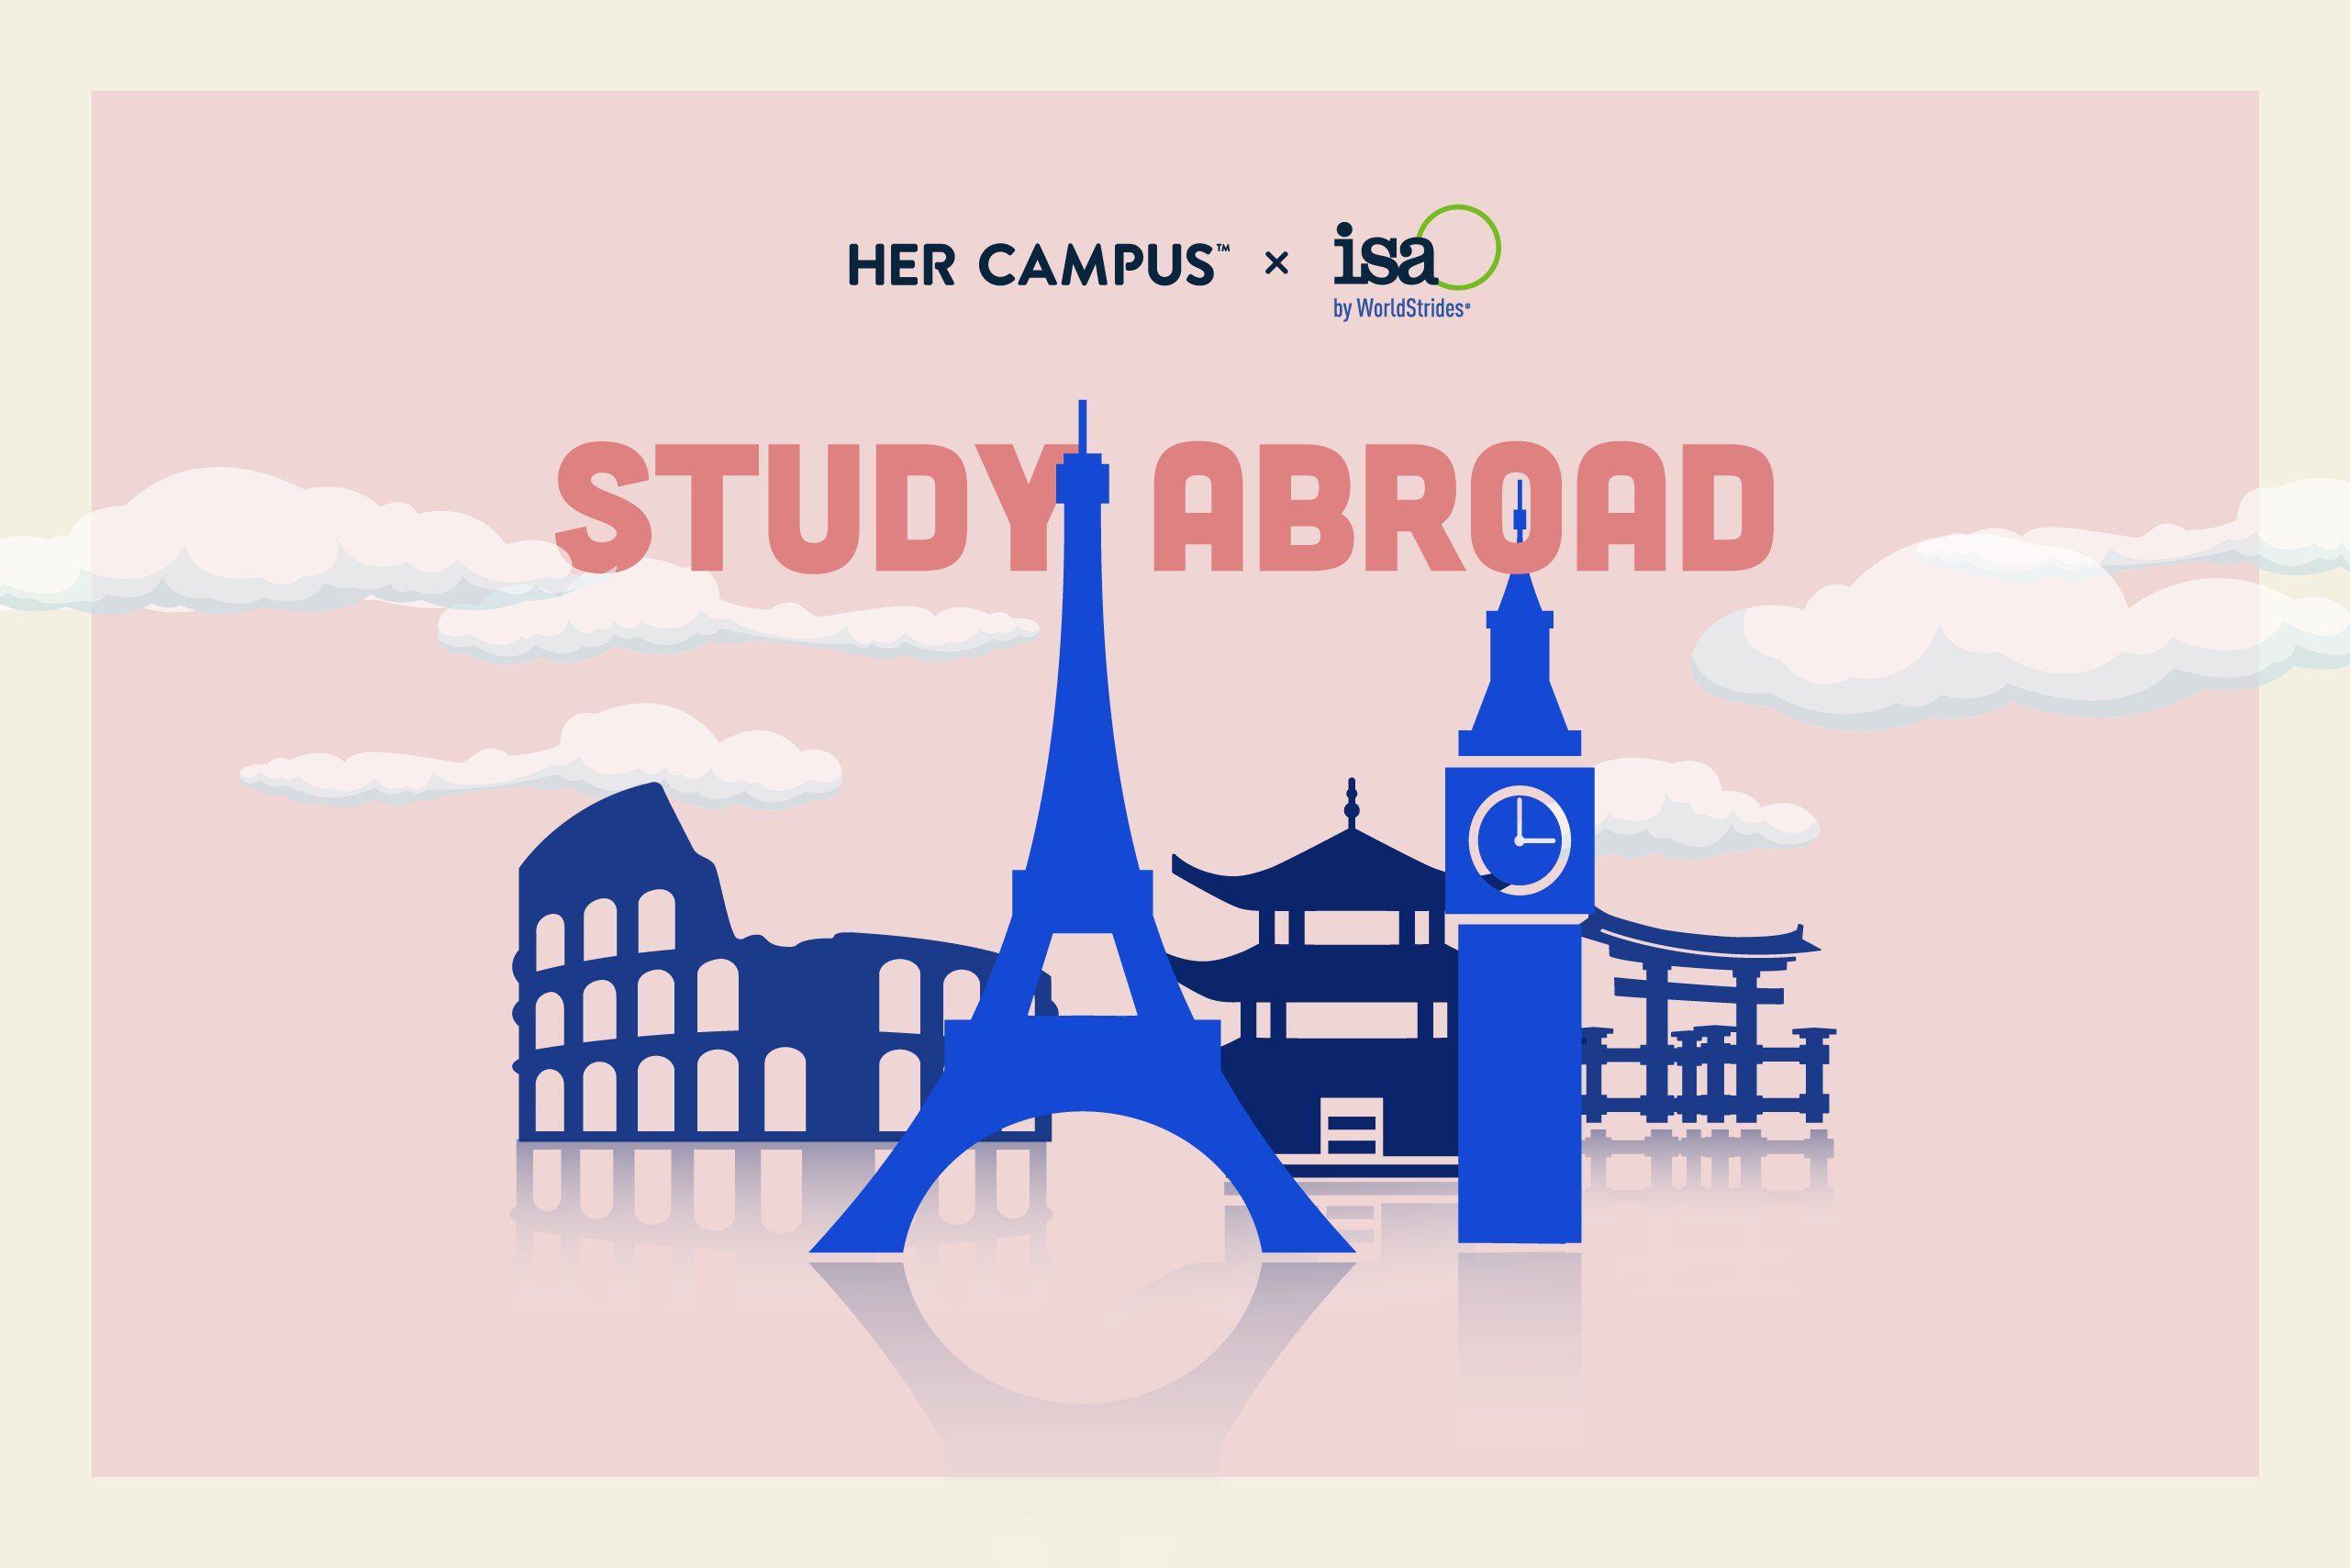 Her Campus x isa by WorldStrides Study Abroad